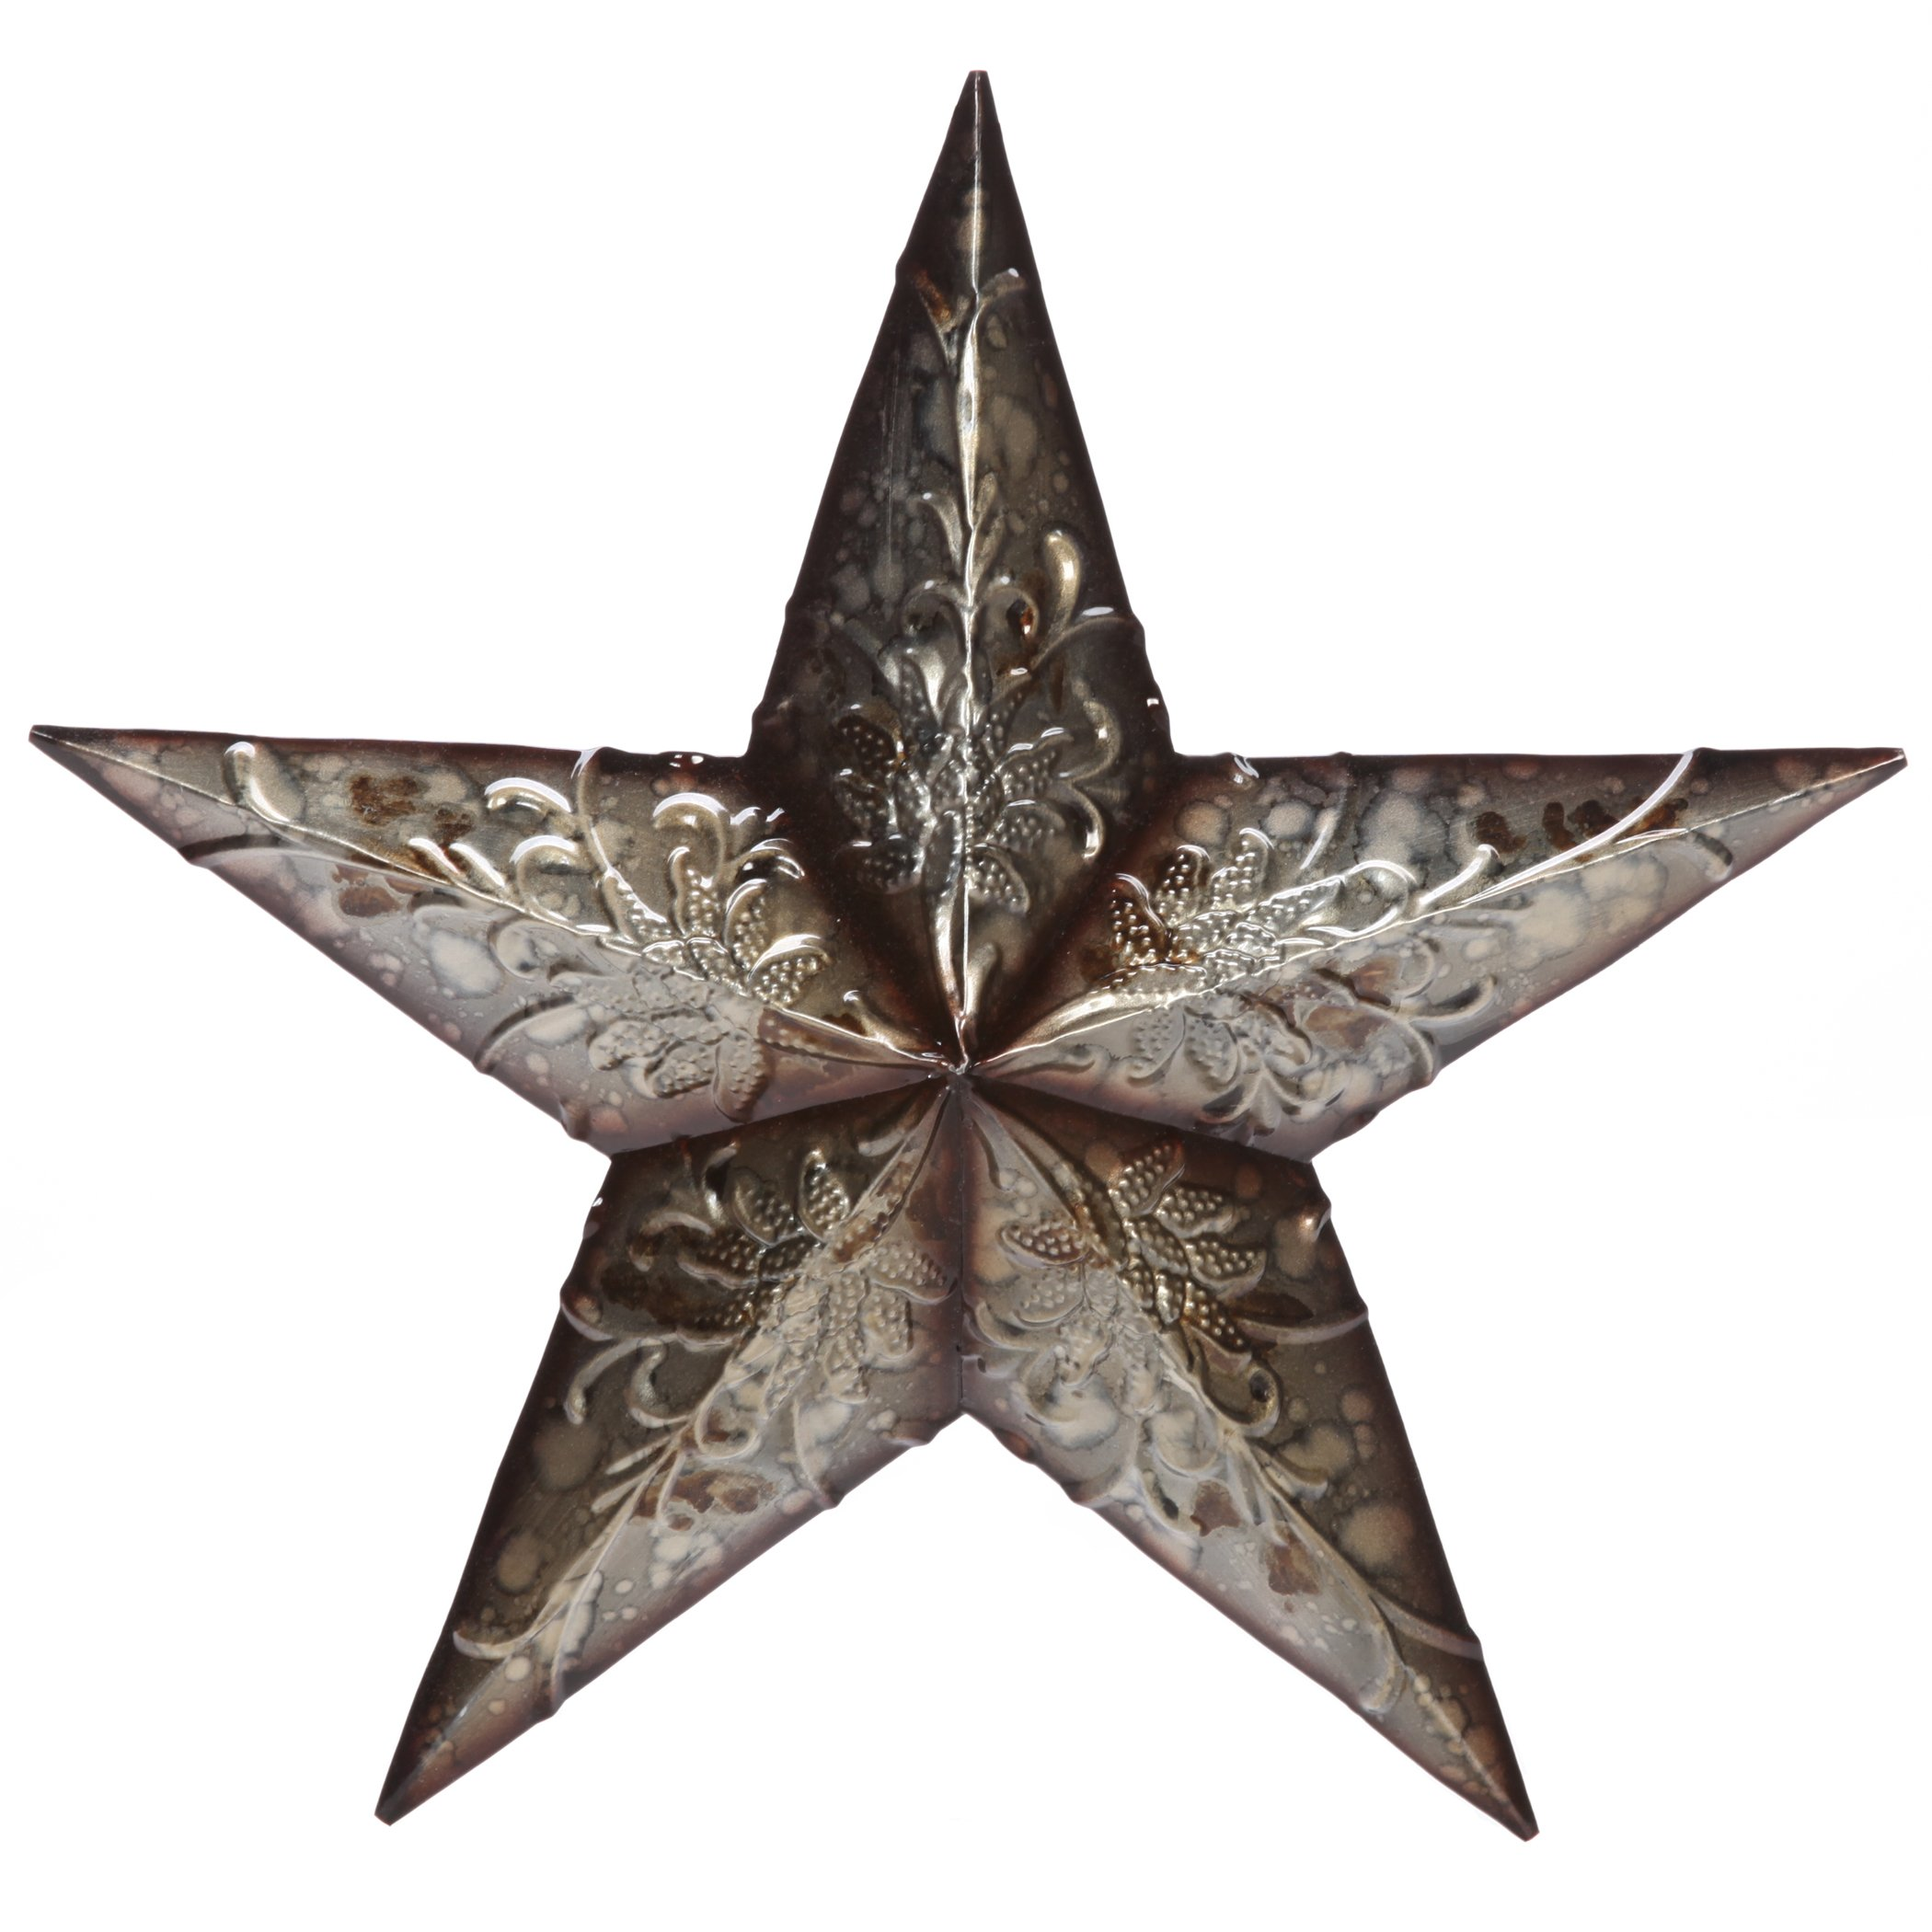 Hosley 16'' High Metal Star Wall Large Decor, Country Style Rustic. Ideal Gift for Wedding, Party, House Warming, Home Office. IDBPP00P1 O9